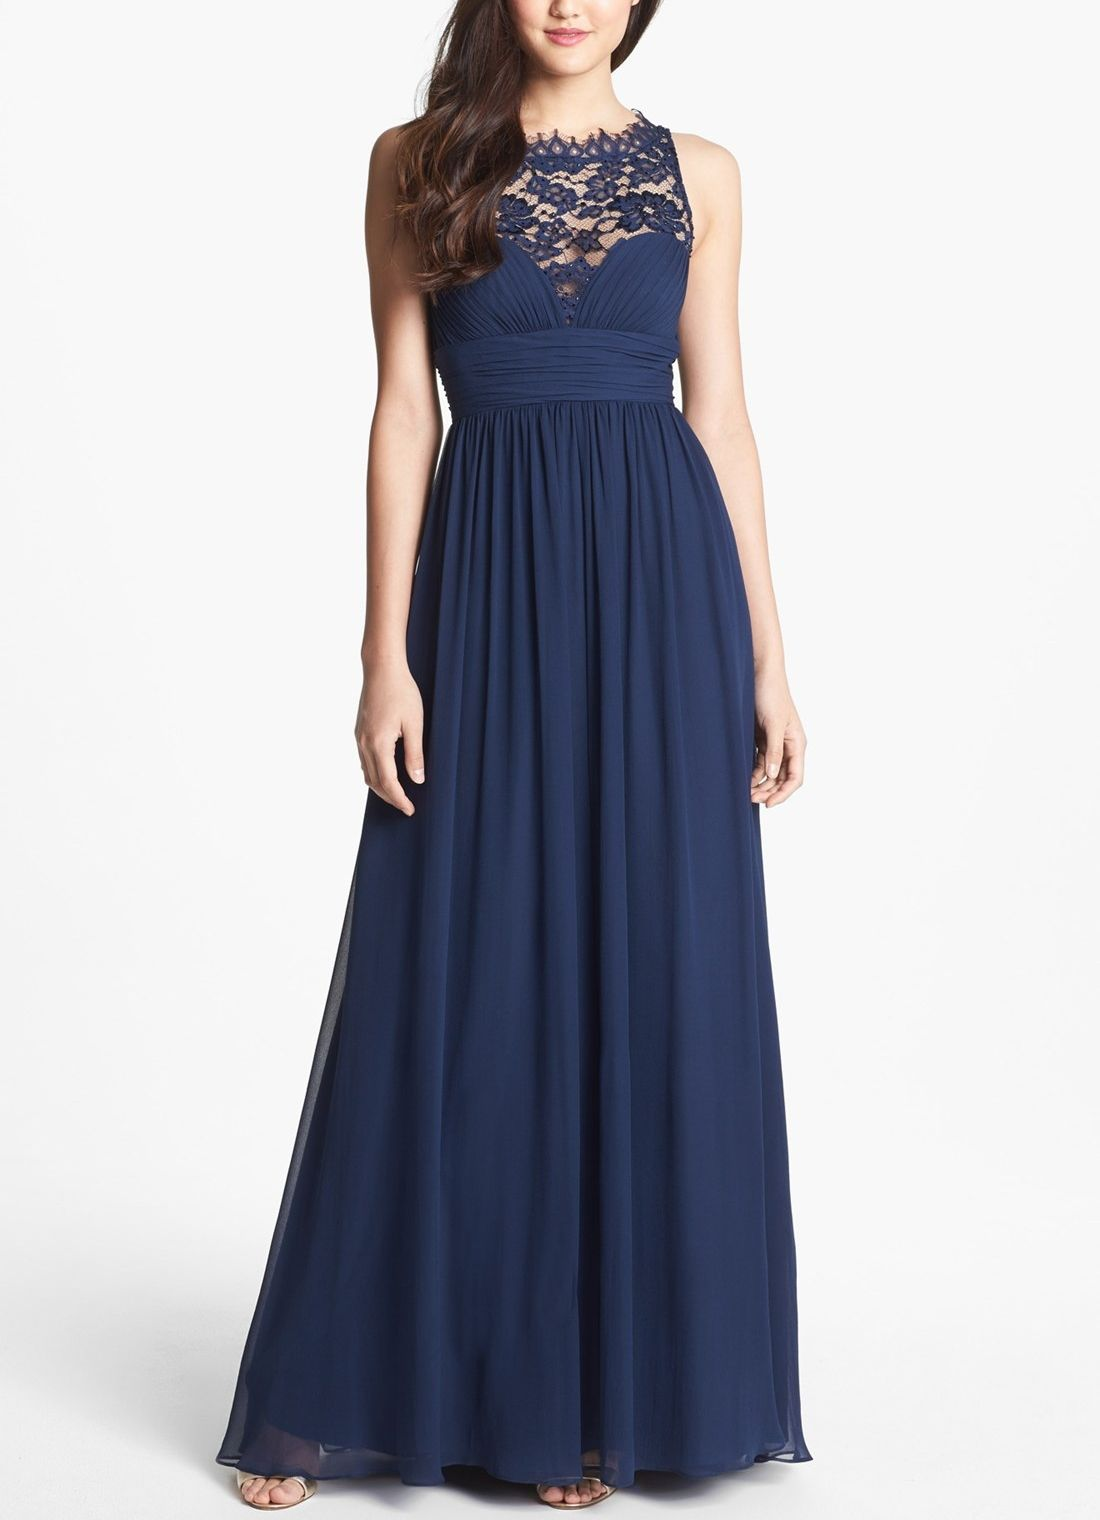 The perfect gown for an elegant soiree. | Top Pins: Nordstrom.com ...